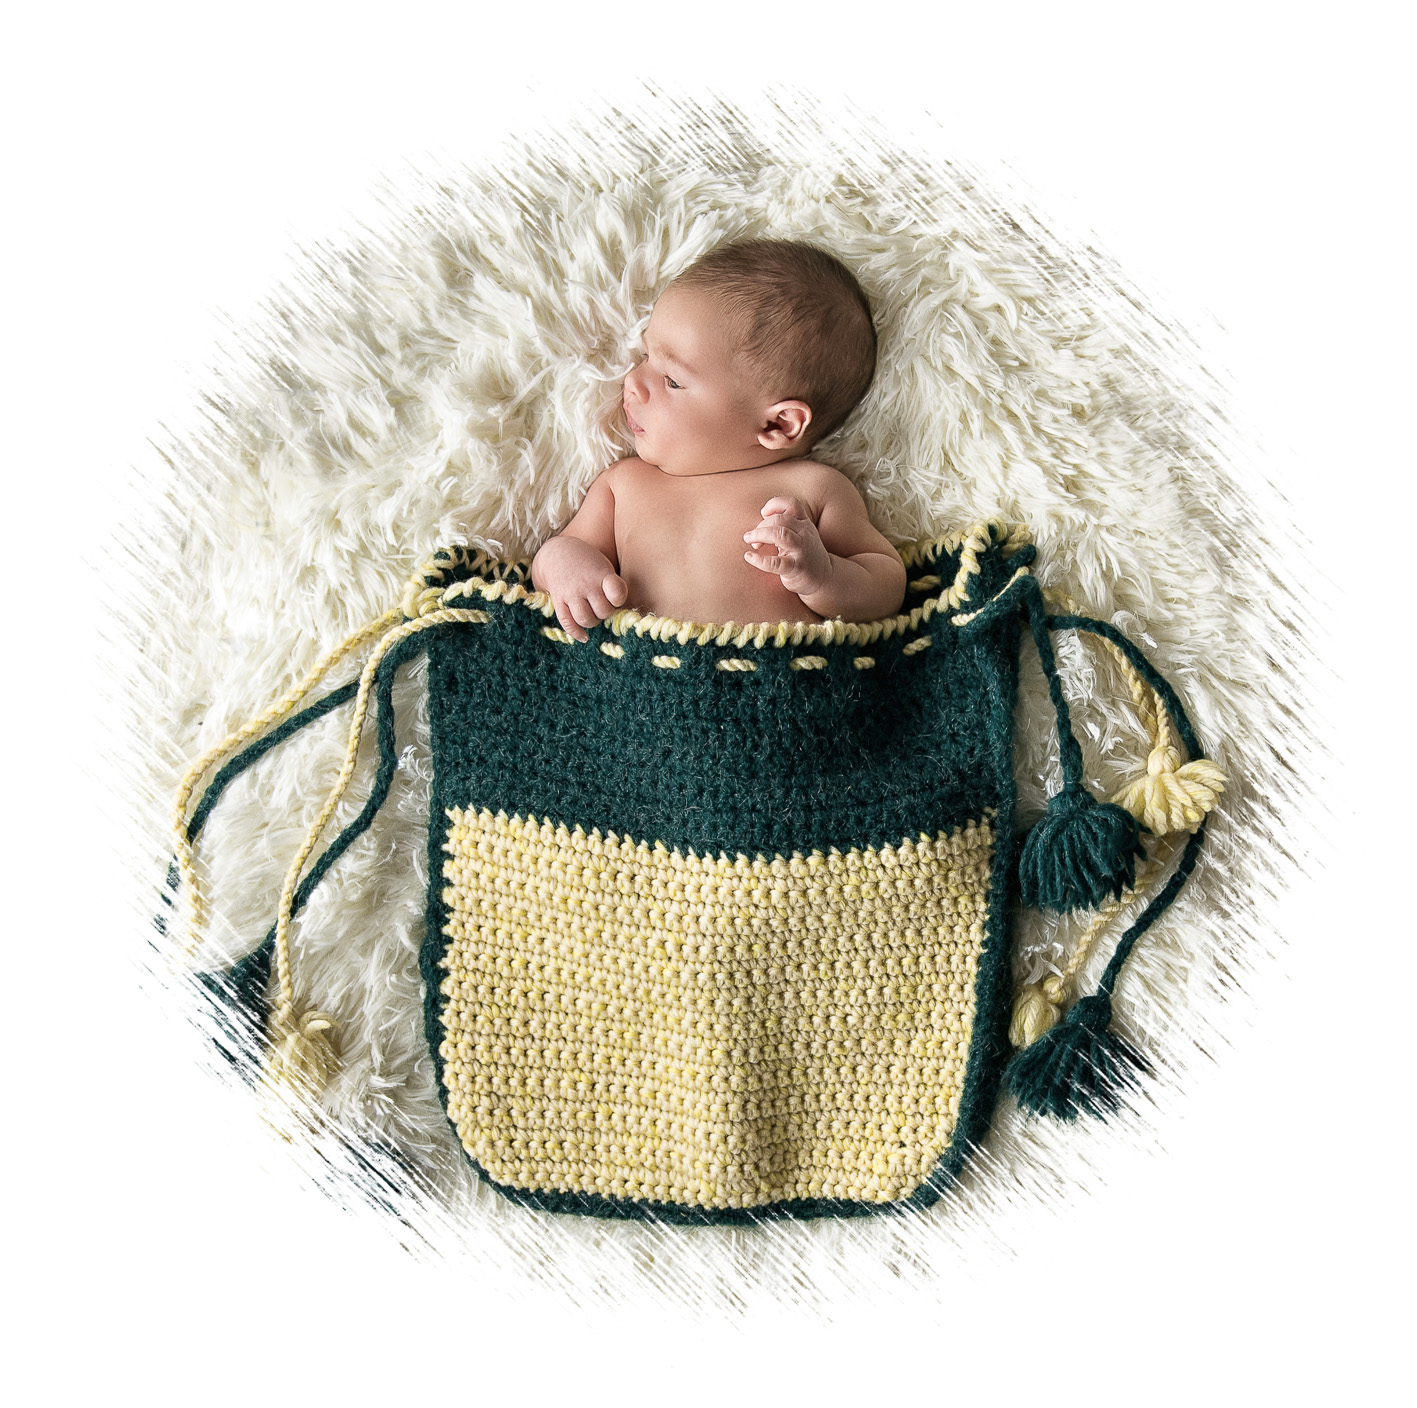 newborn-tagg-photography-7